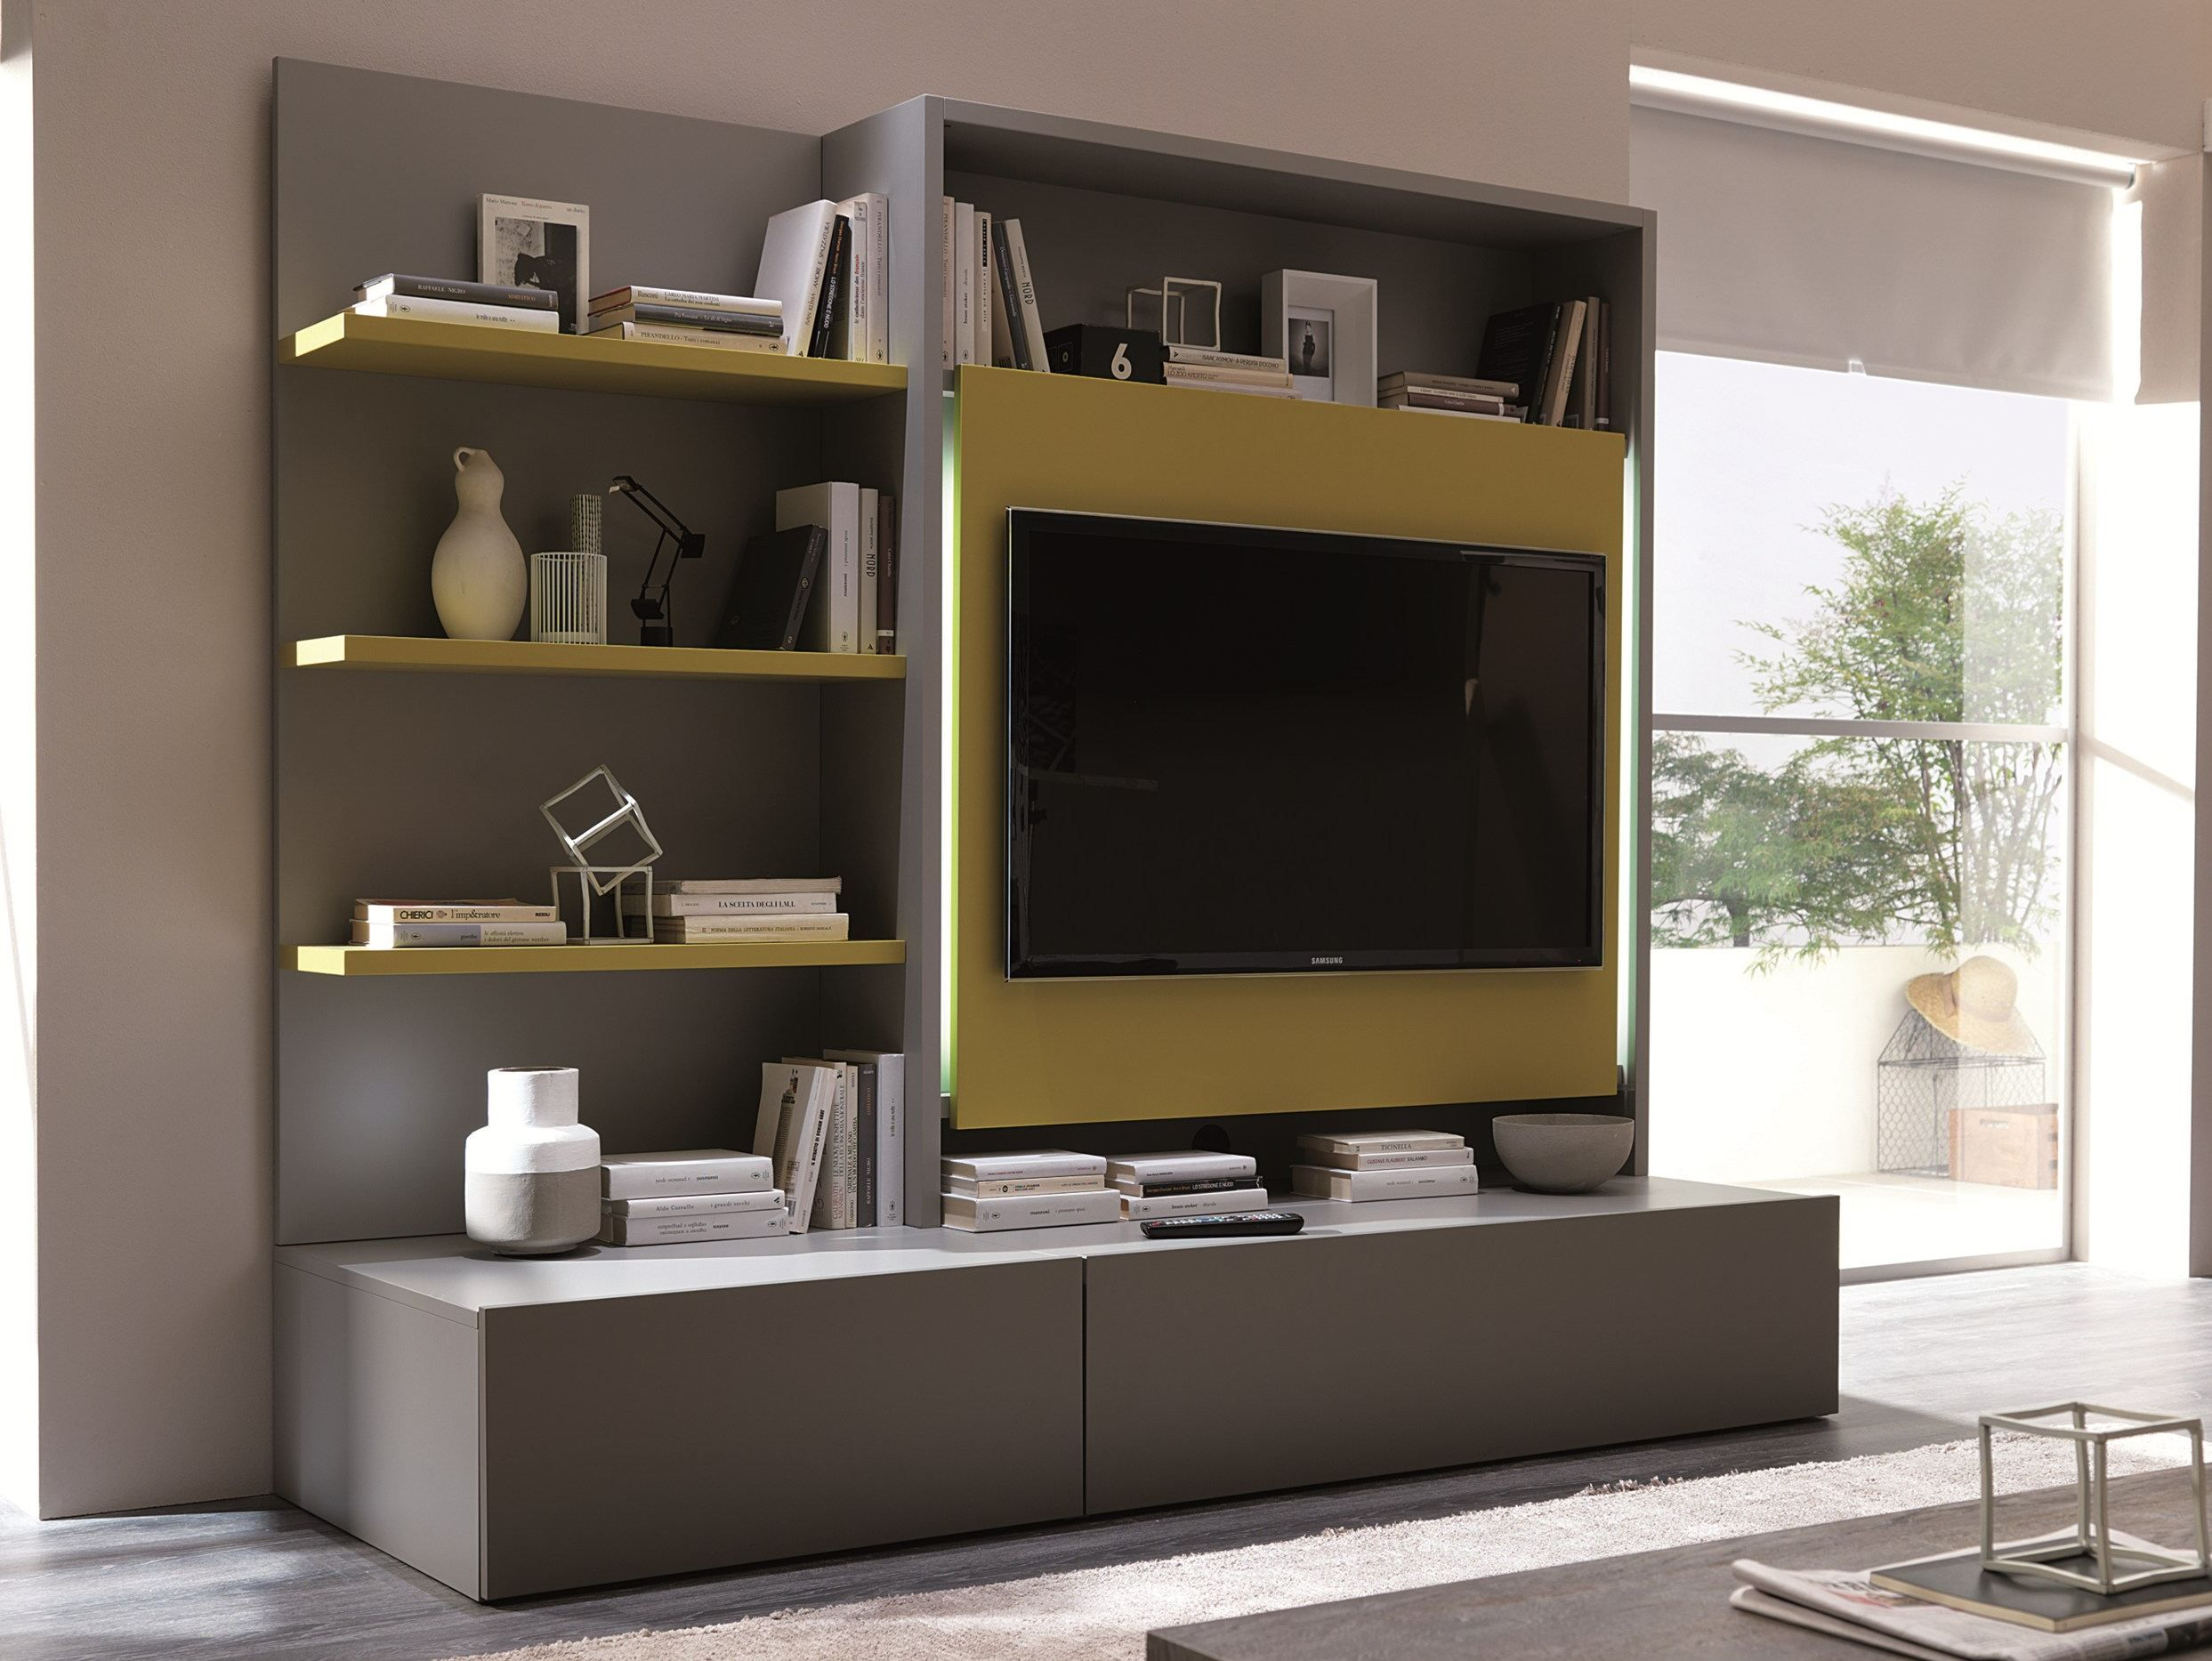 Smart Living By Ozzio Italia Design Marco Pozzoli Stefano Curioni  # Muebles New Concept